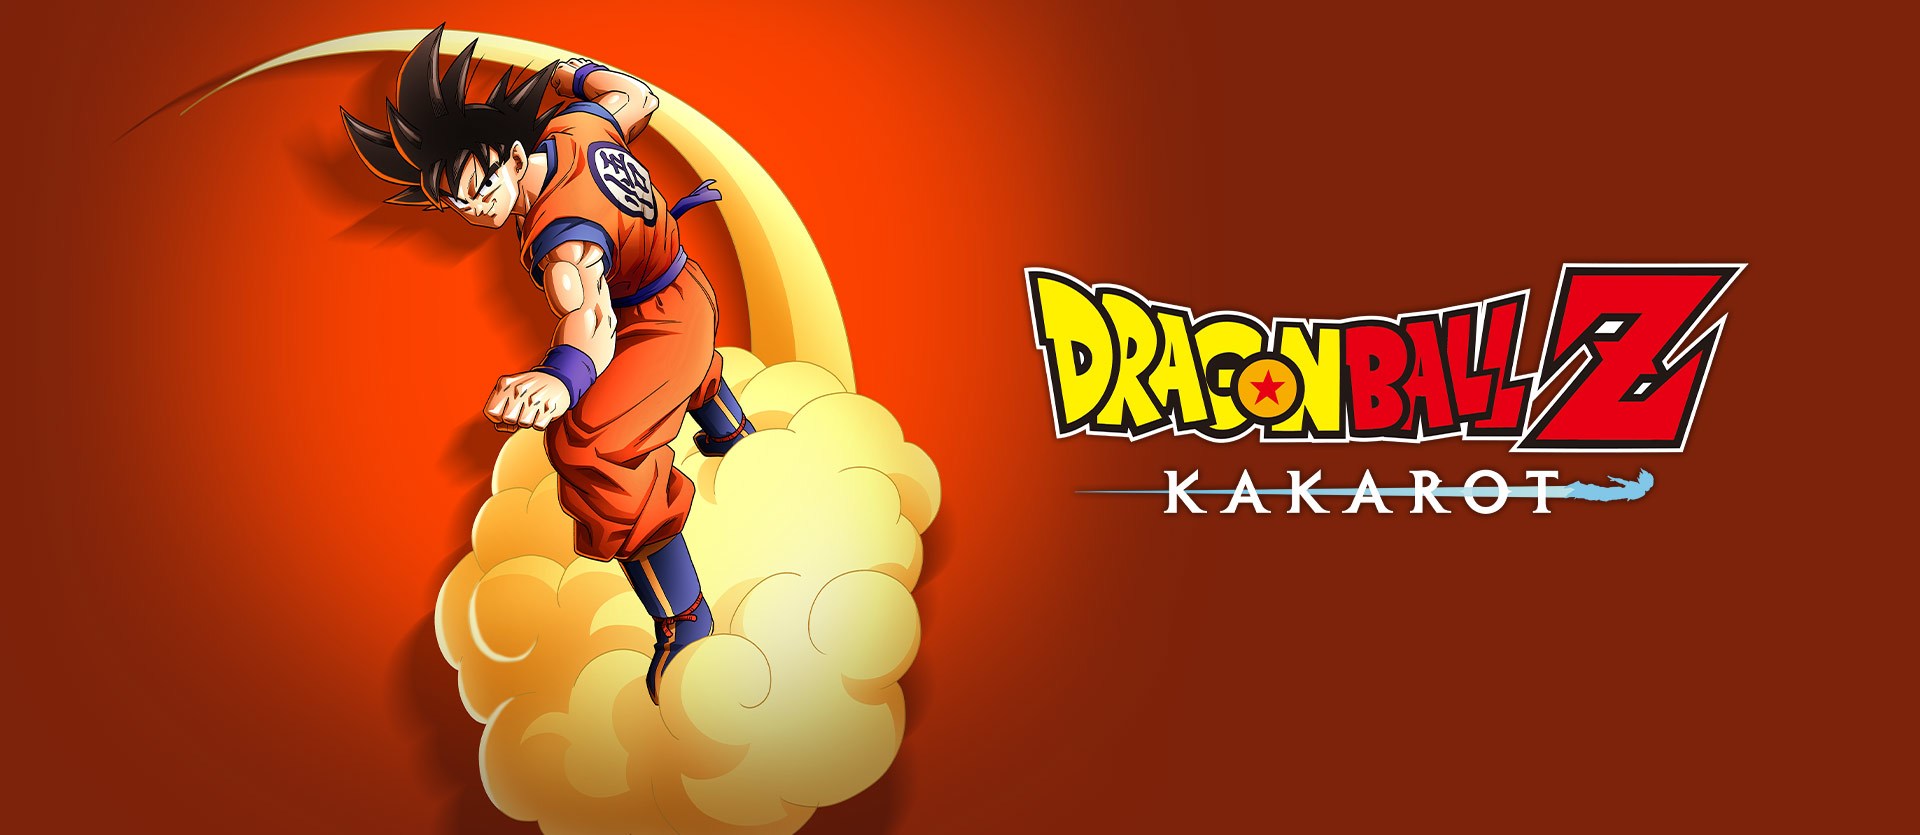 How to download Dragon ball Z Kakarot PC